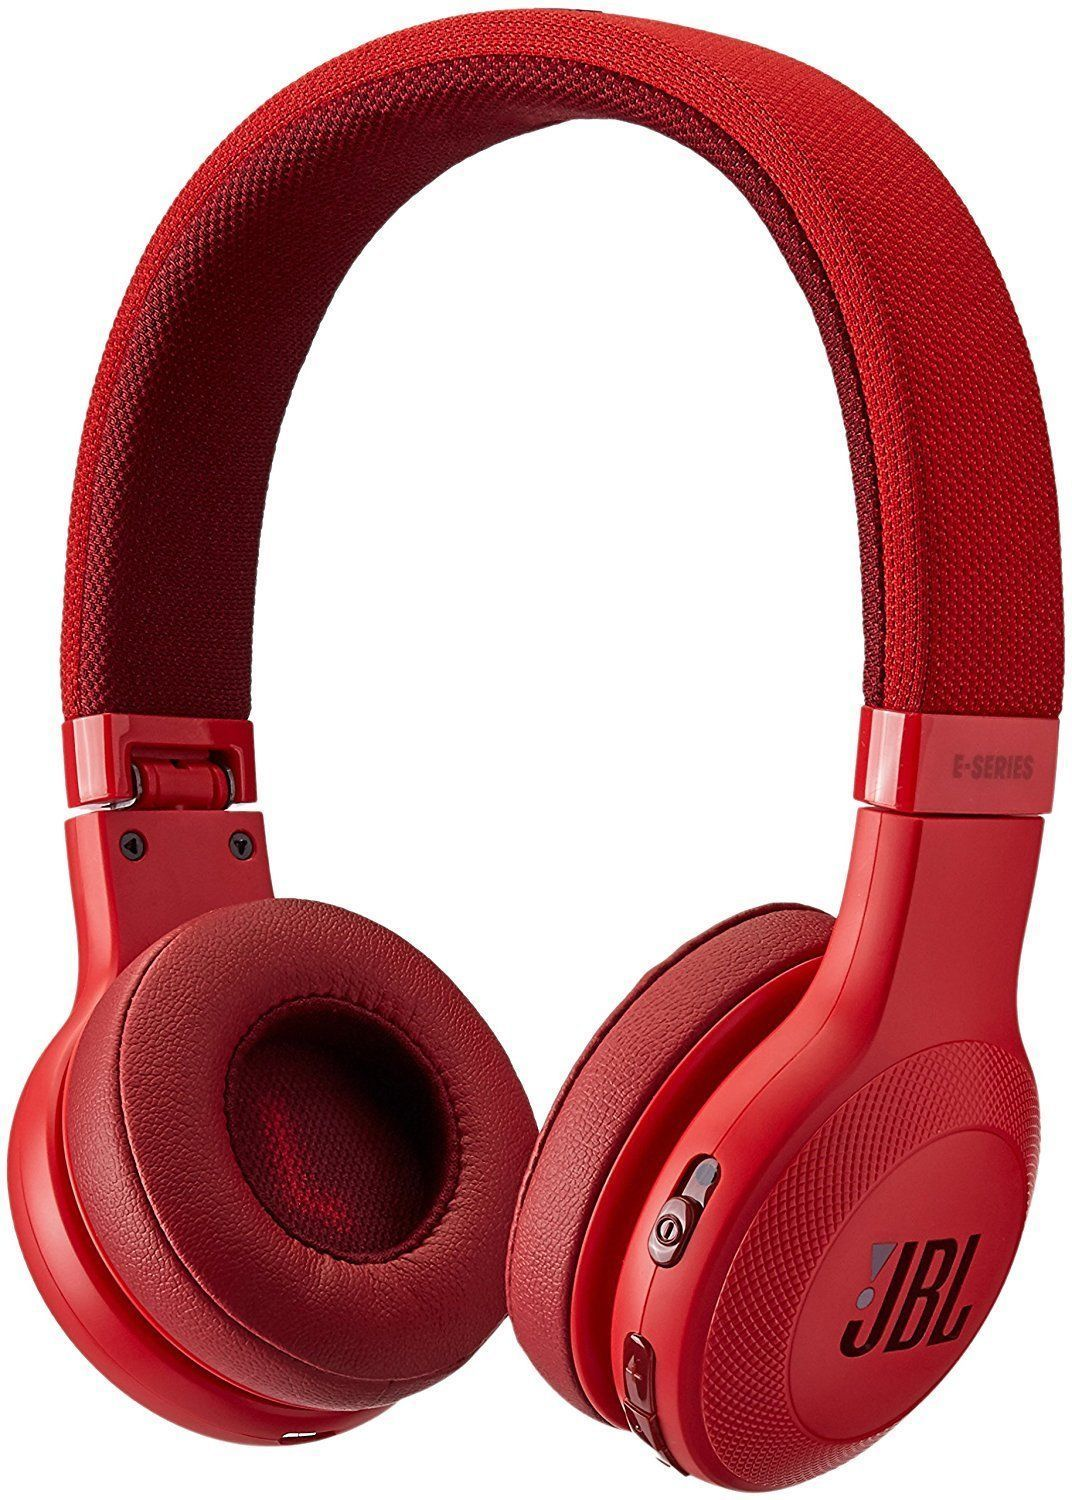 JBL Synchros E45BT Wireless Onear Headphones (Red) (With